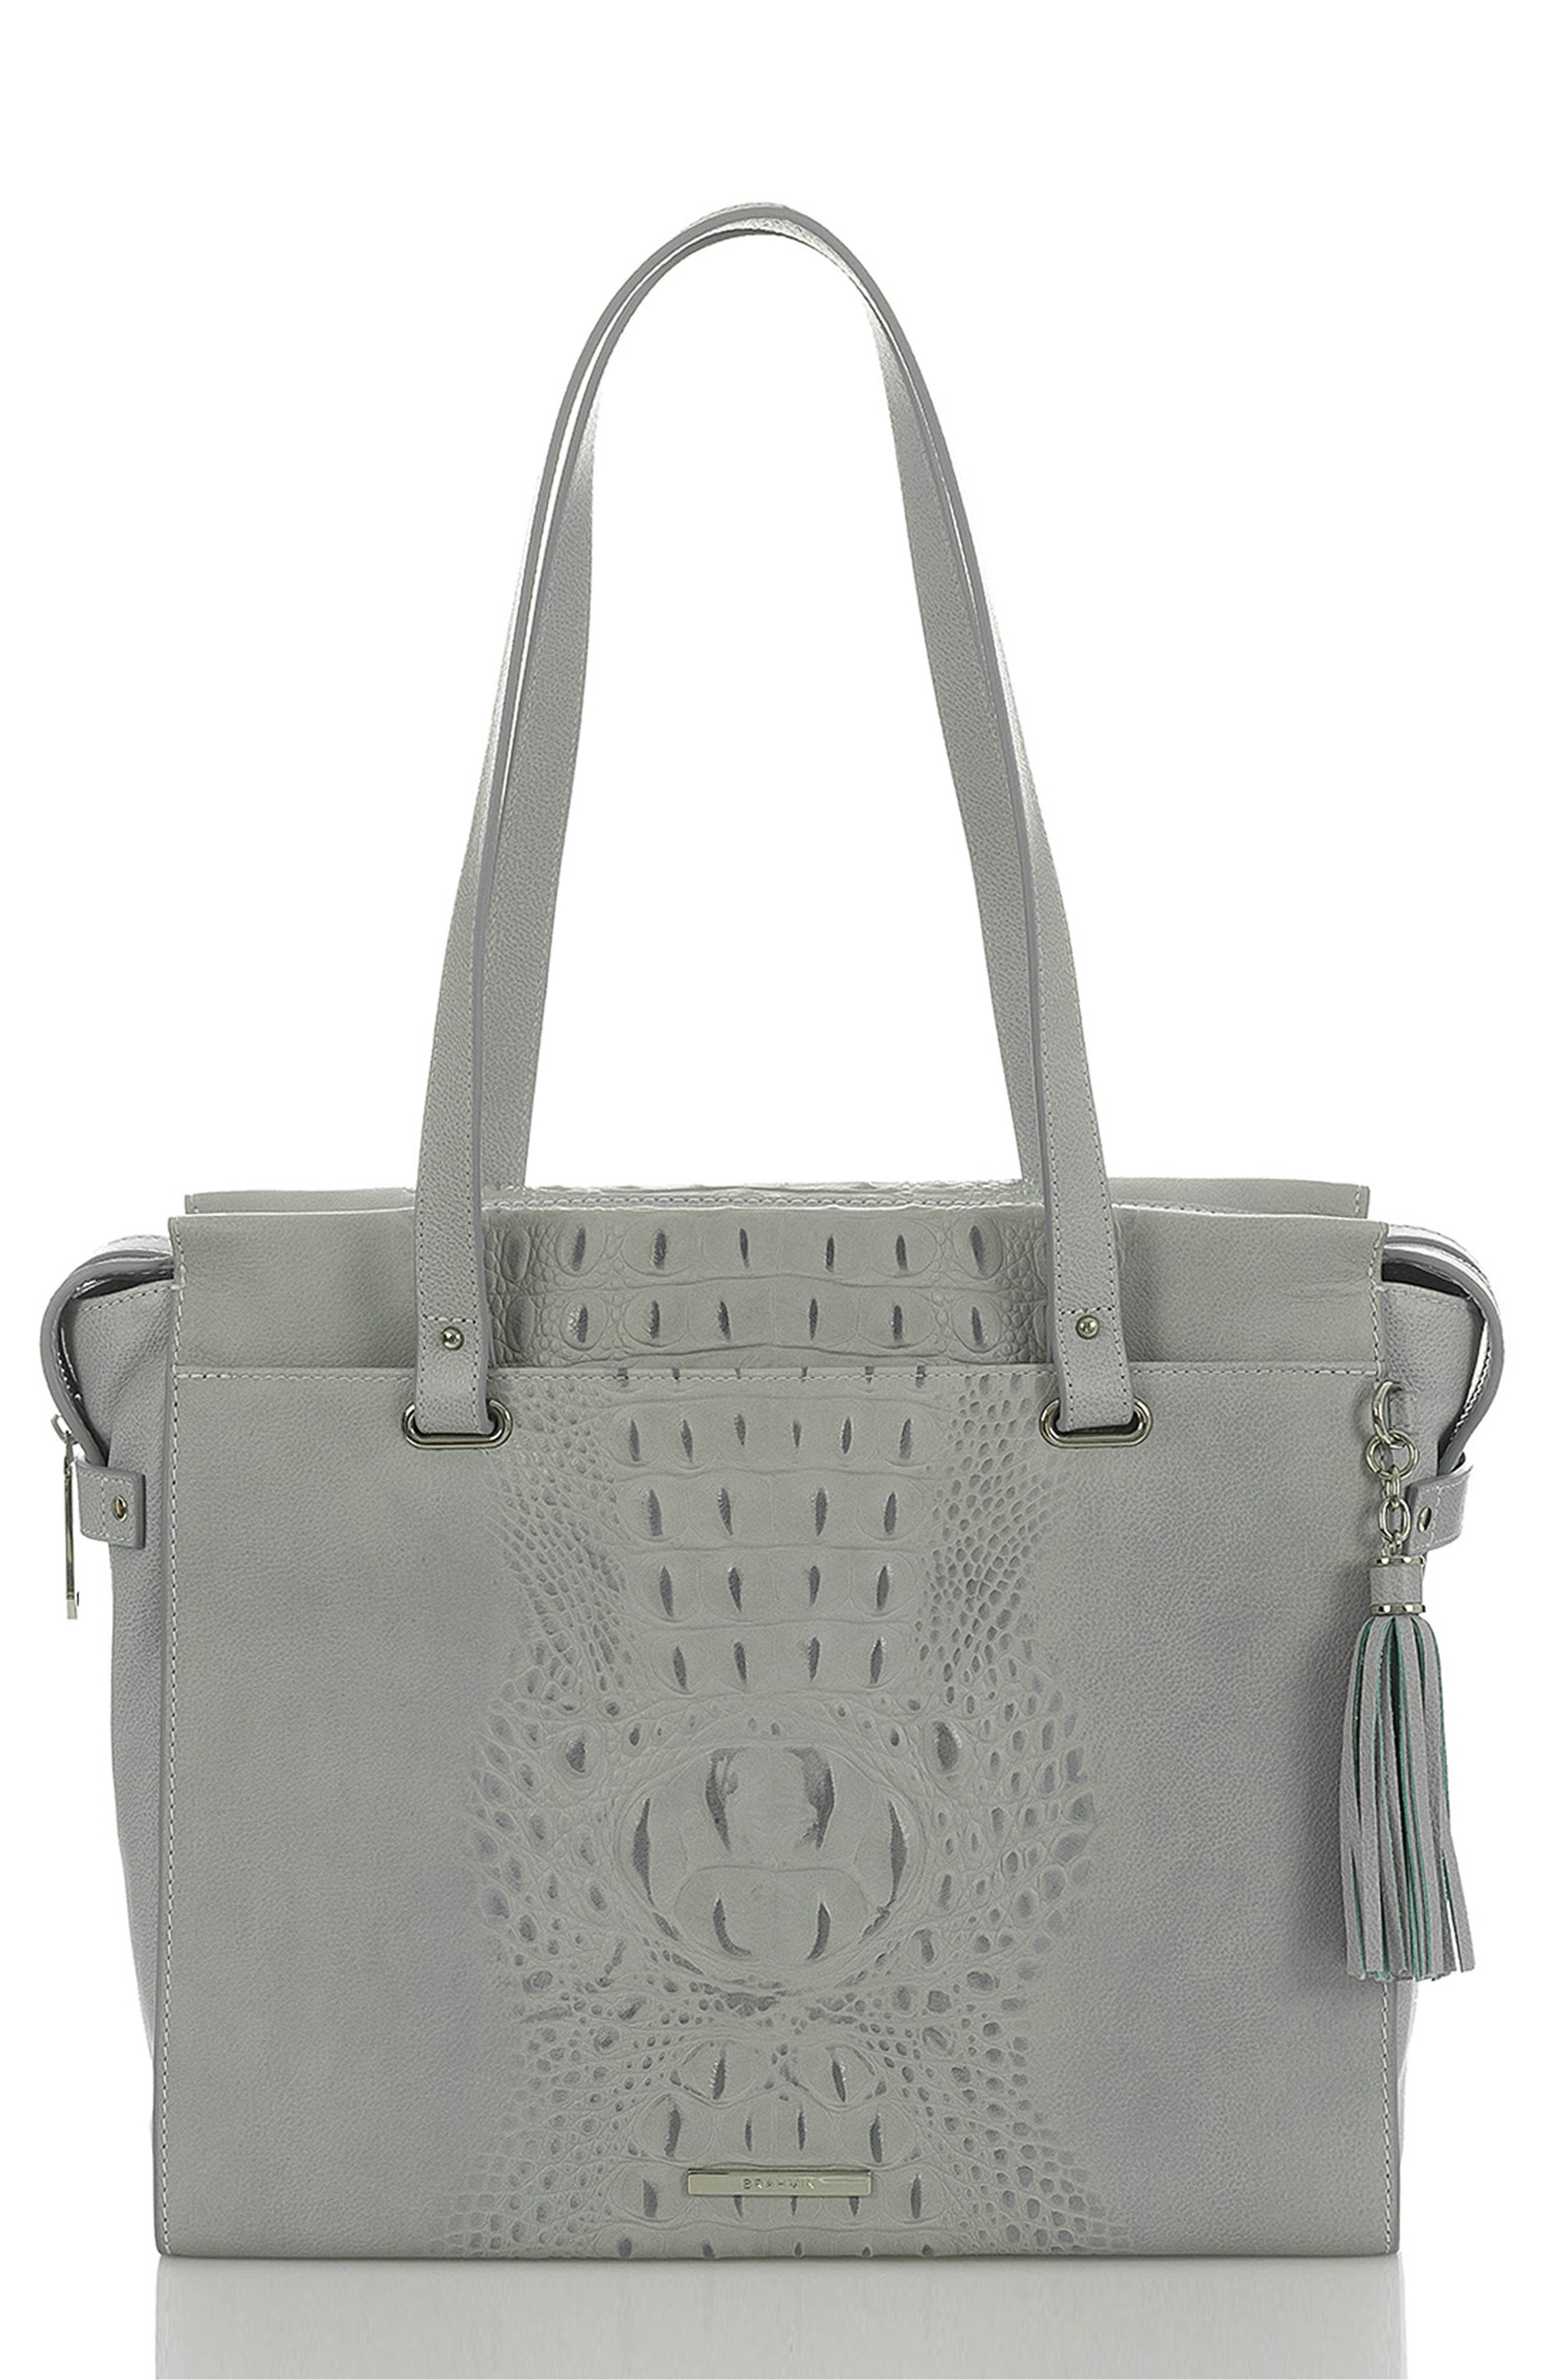 BRAHMIN Medium Emily Leather Tote, Main, color, OCEAN